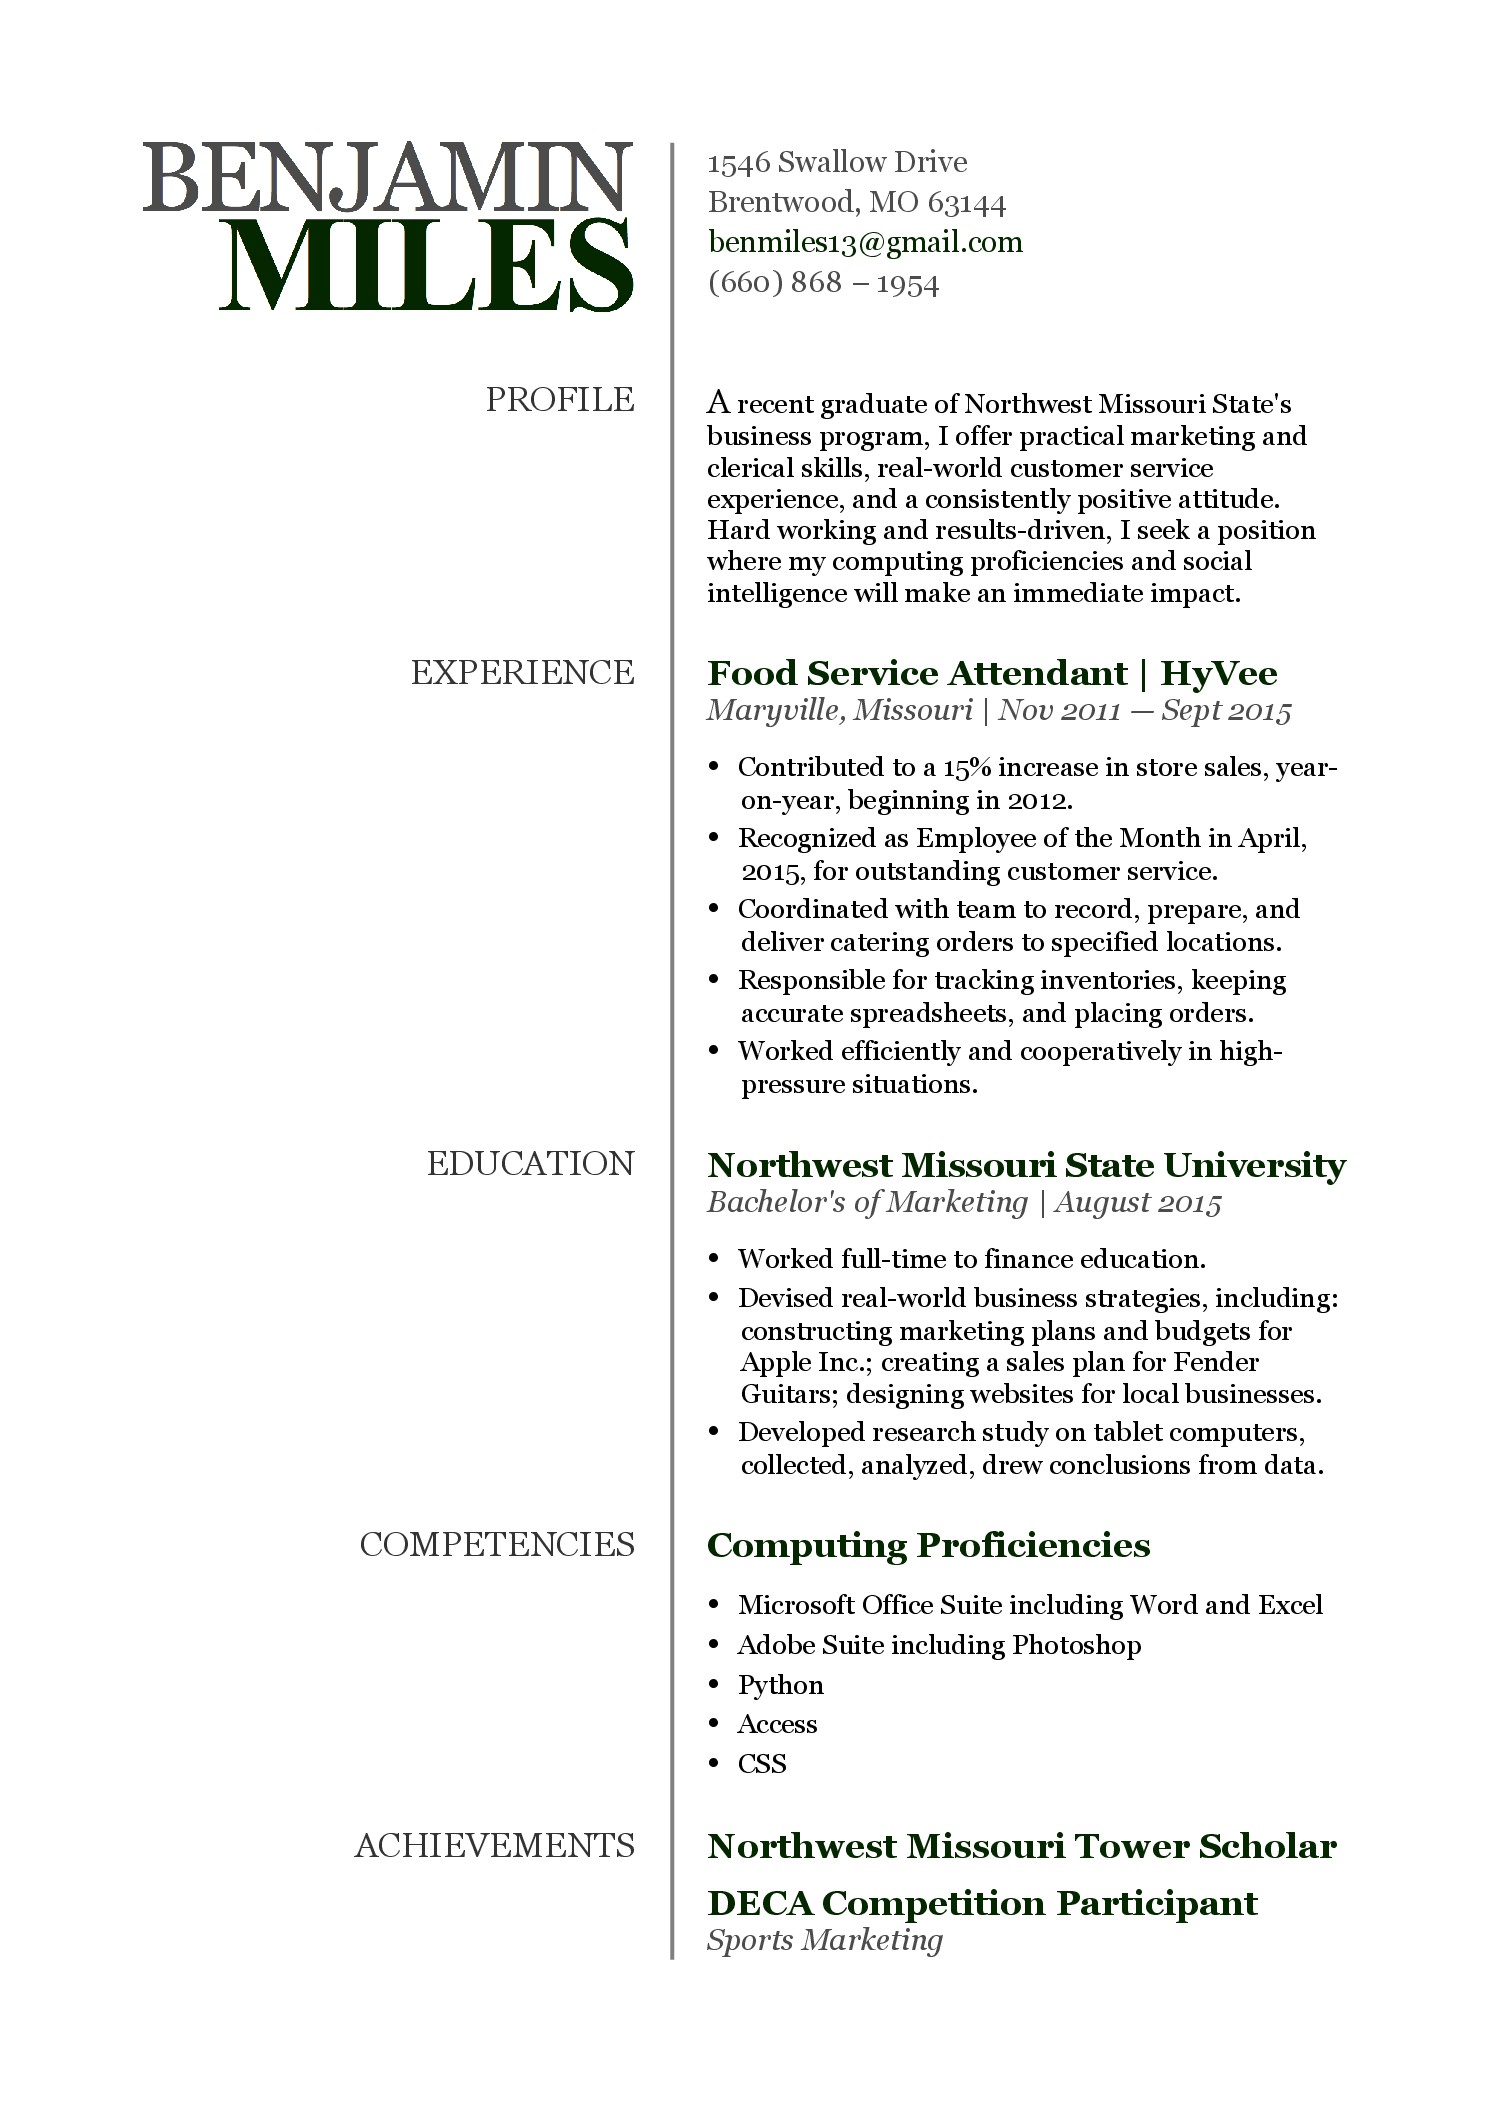 resume lance writer examples lance writer editor resume samples visualcv resume samples visualcv modern professional resume - Freelance Writer Resume Sample